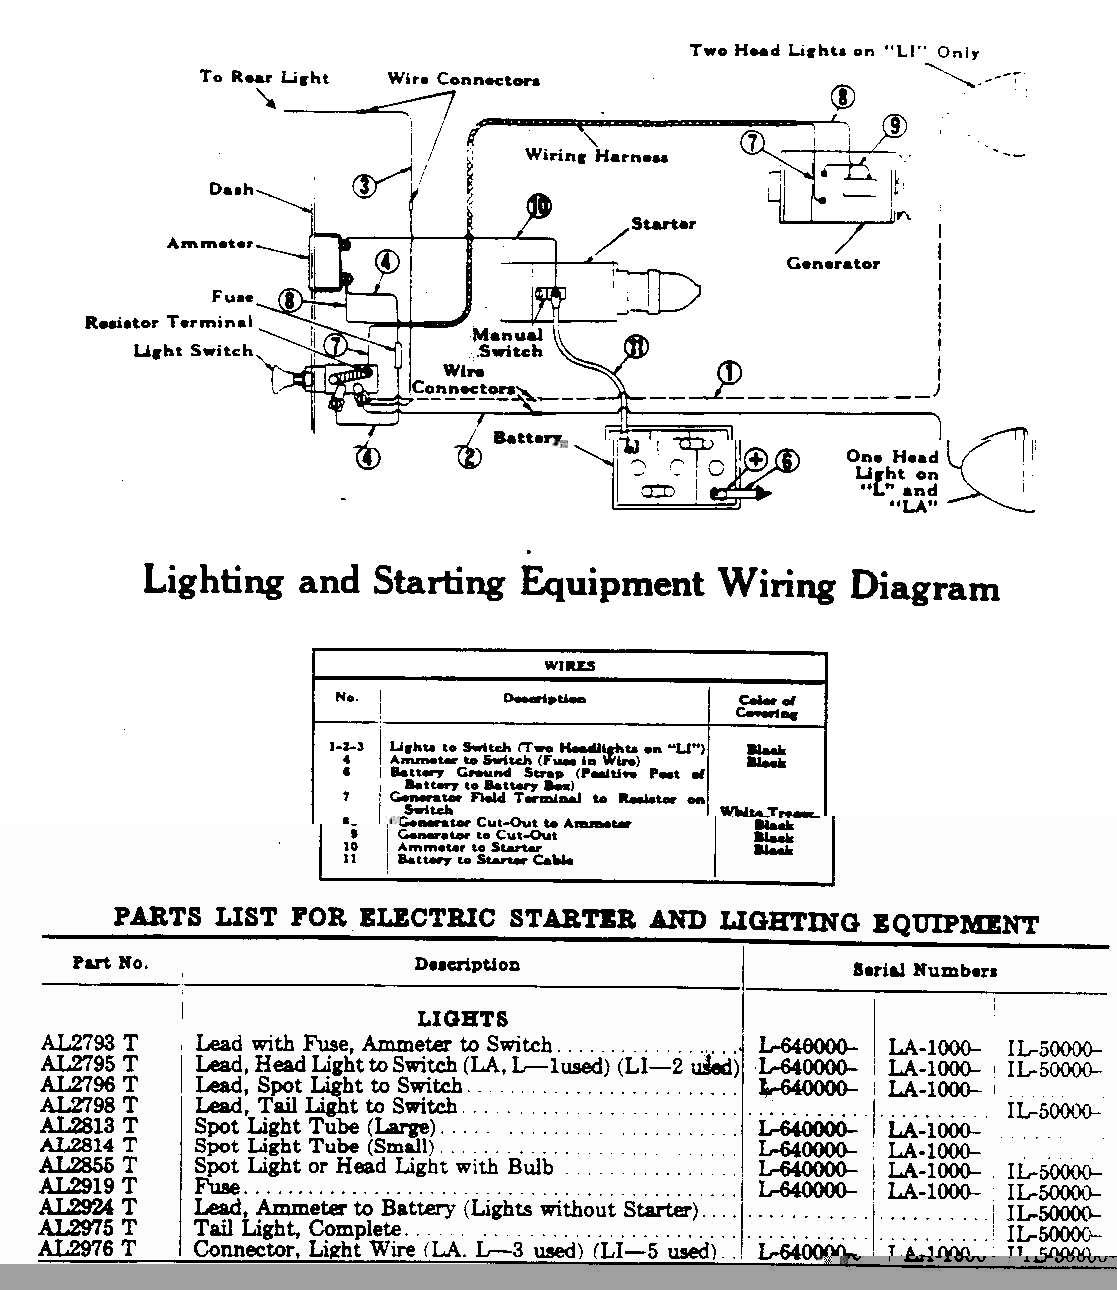 Case Vac Tractor Wiring Diagram Trusted 277 Data Schema Rusty Acres Ranch Rh Vintagetractors Com 1175 Starter 208 Single Phase